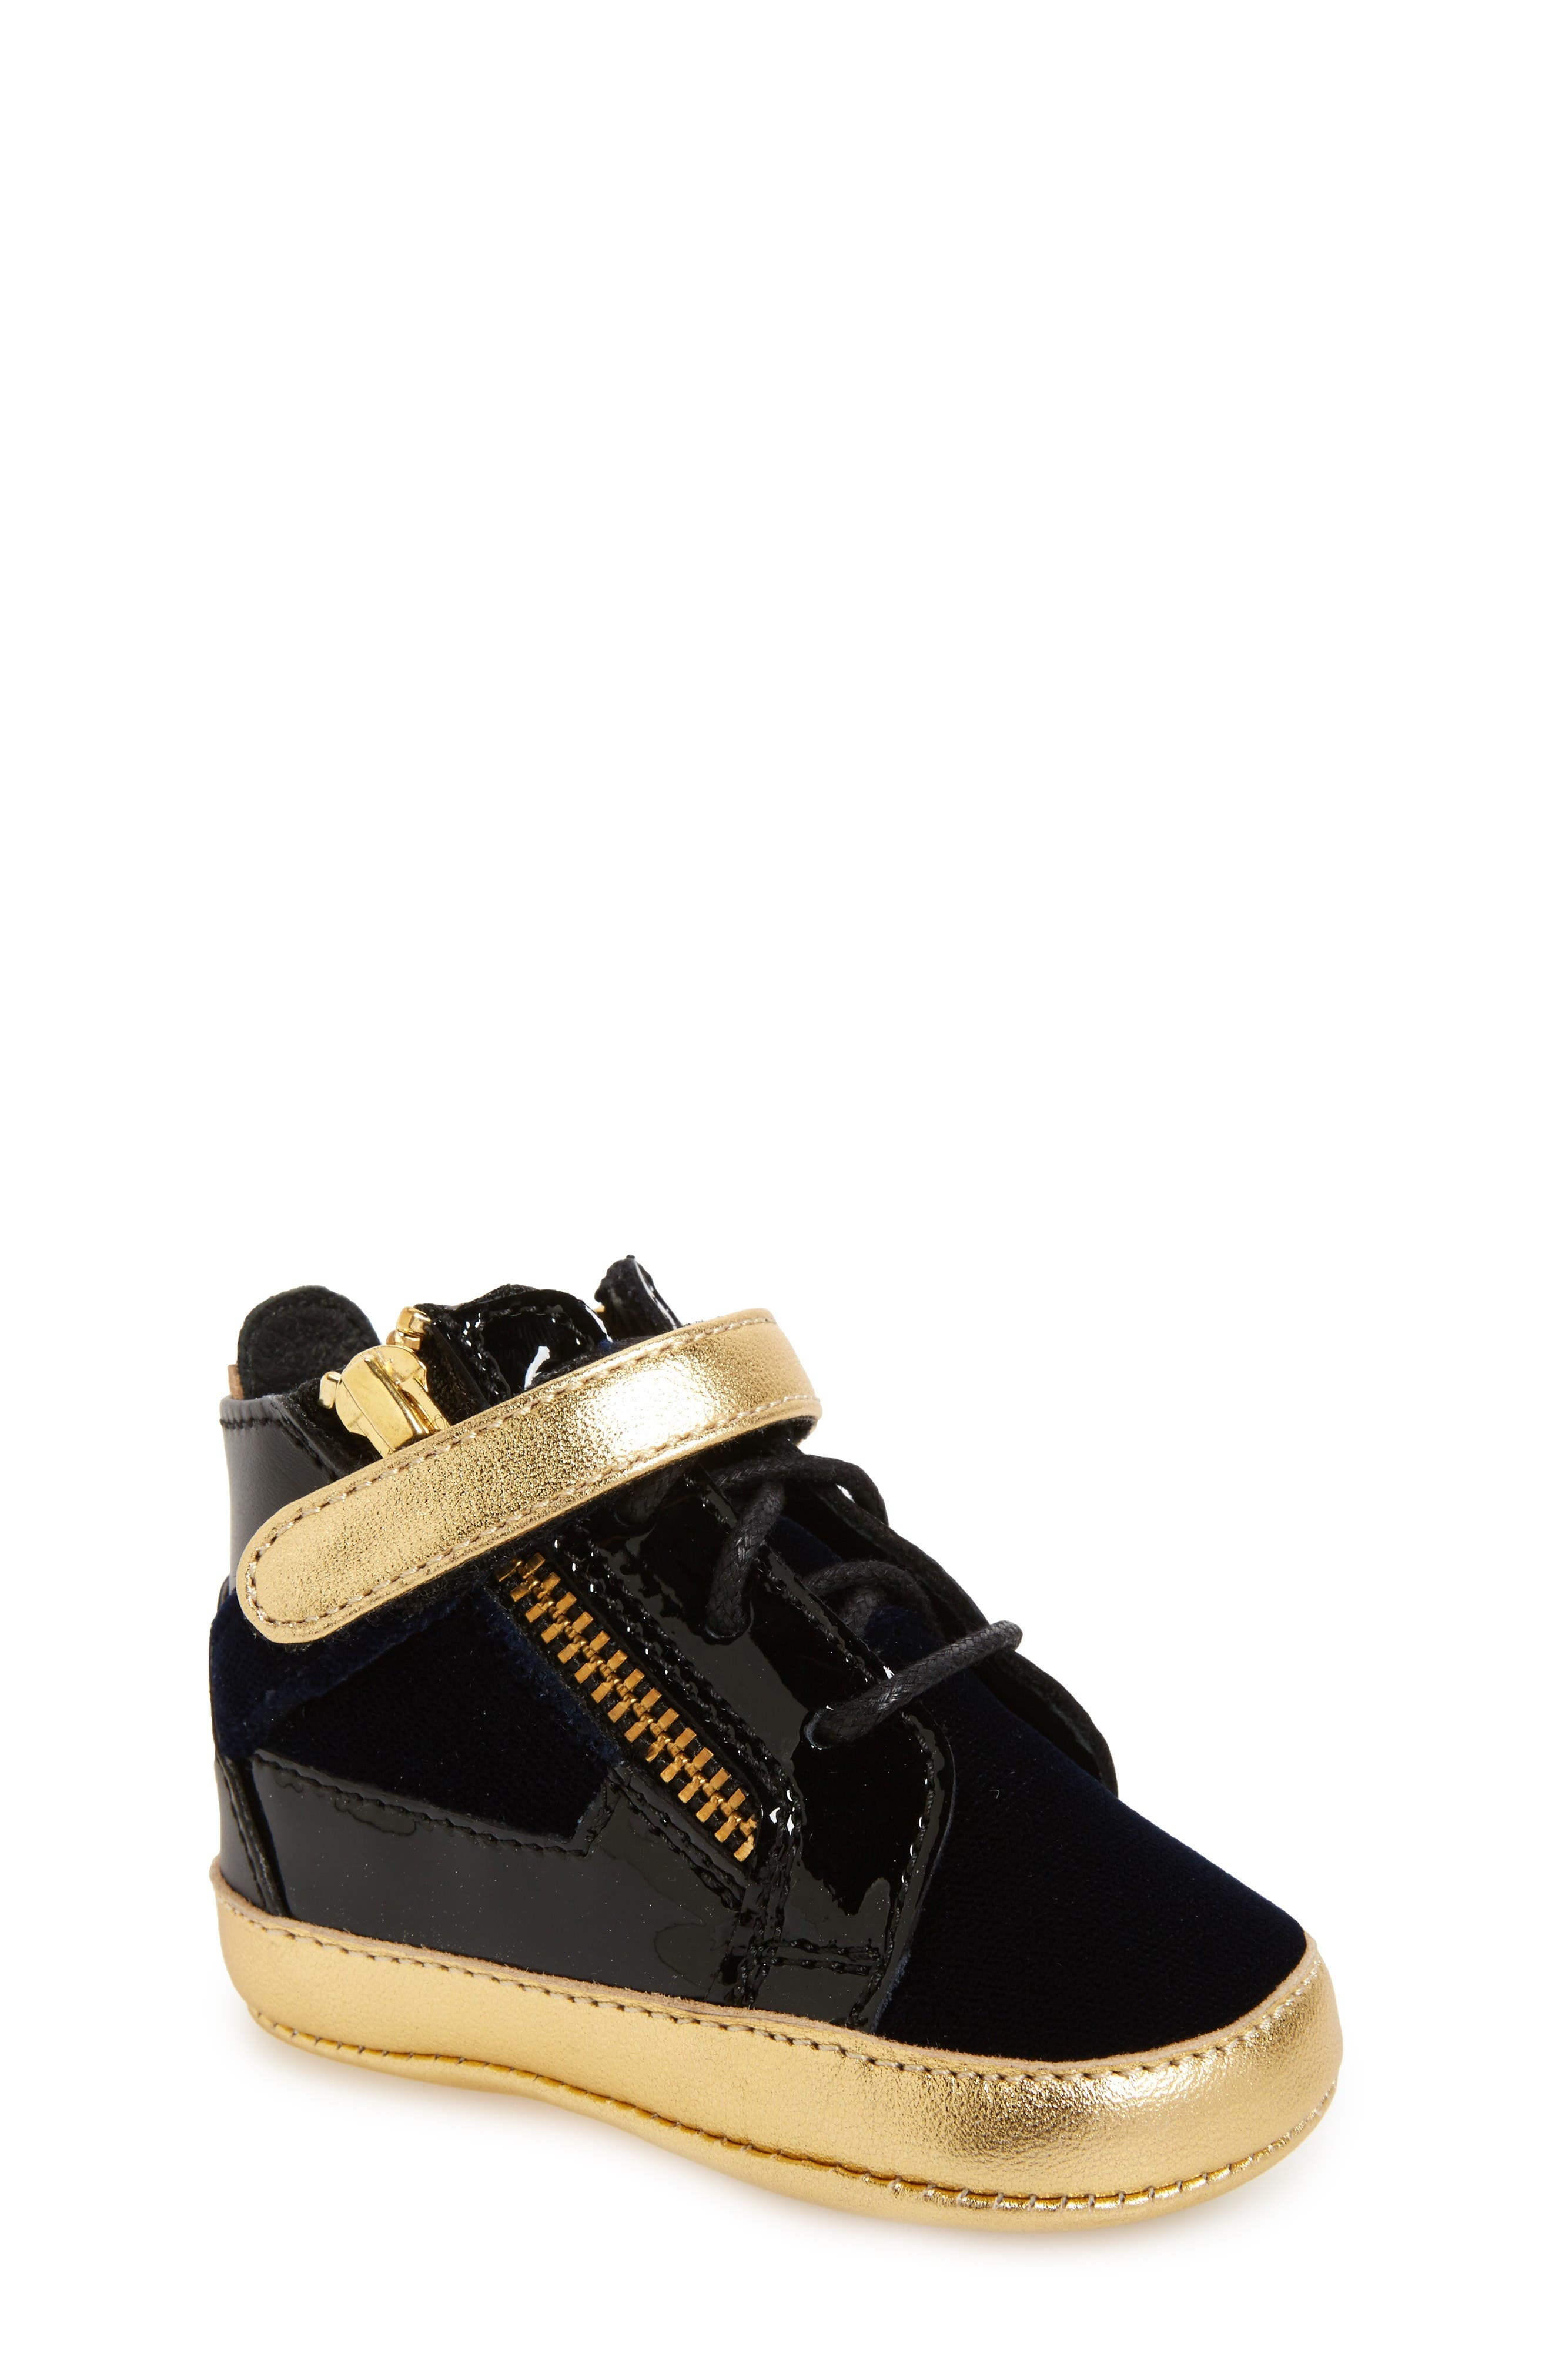 Giuseppe Zanotti Coby Junior Veronica High Top Crib Shoe (Baby)